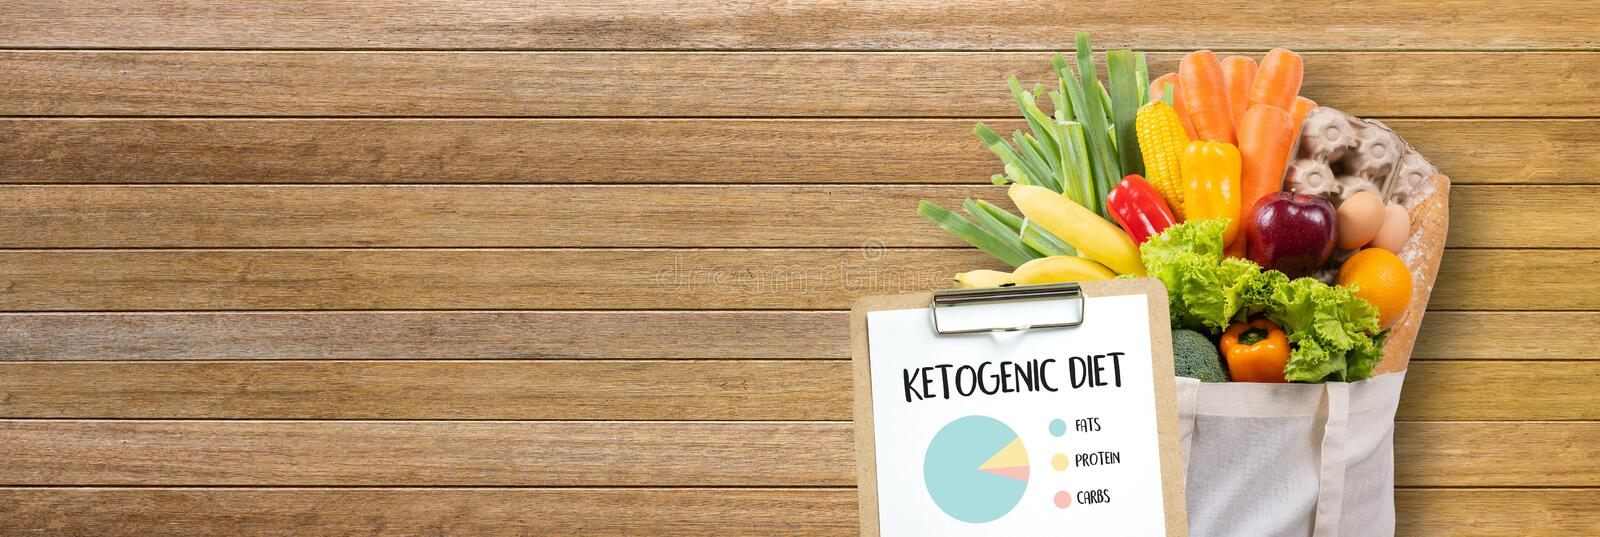 Ketogenic diet Organic grocery vegetables Healthy low carbs. Concept stock image